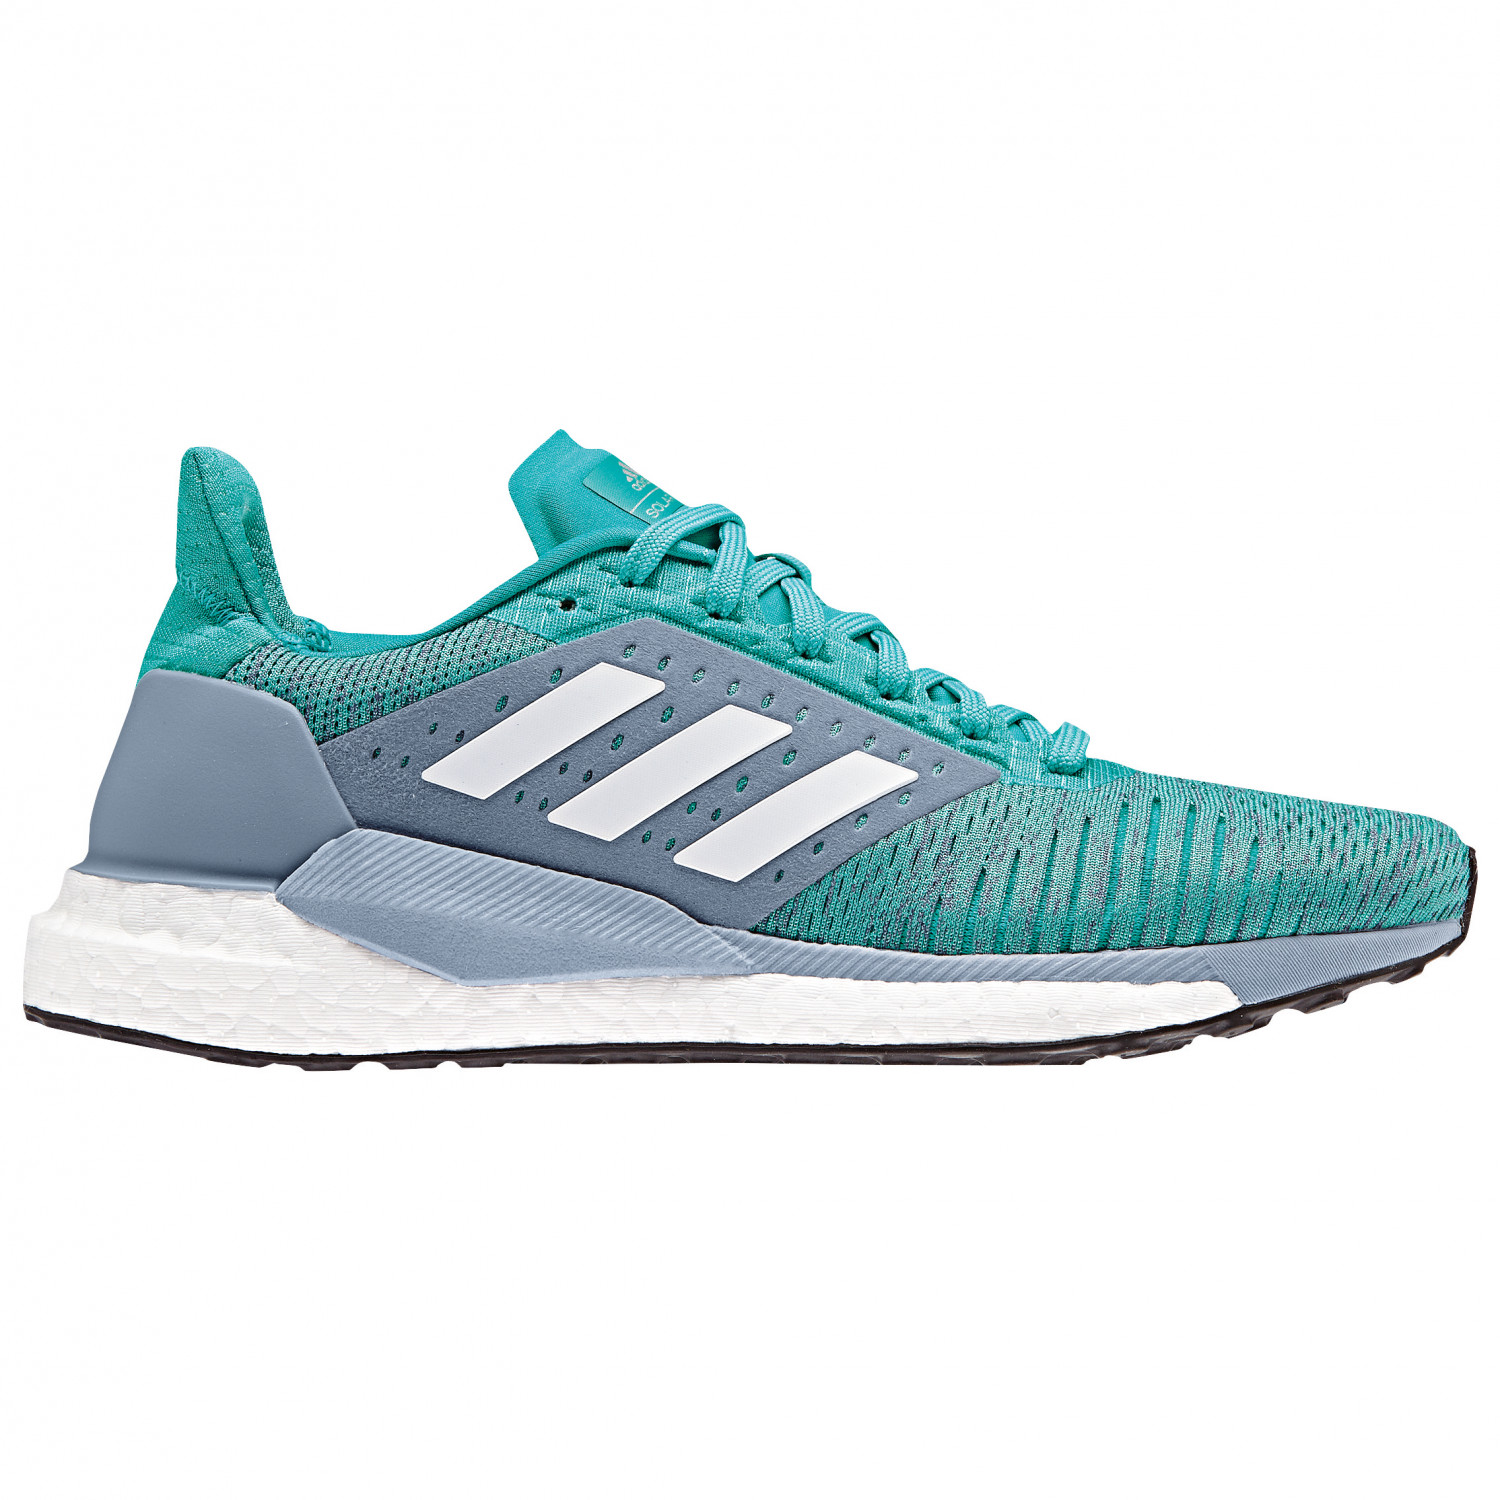 reputable site 0c5d8 5f4af Adidas Solar Glide ST - Running shoes Womens  Free EU Delive